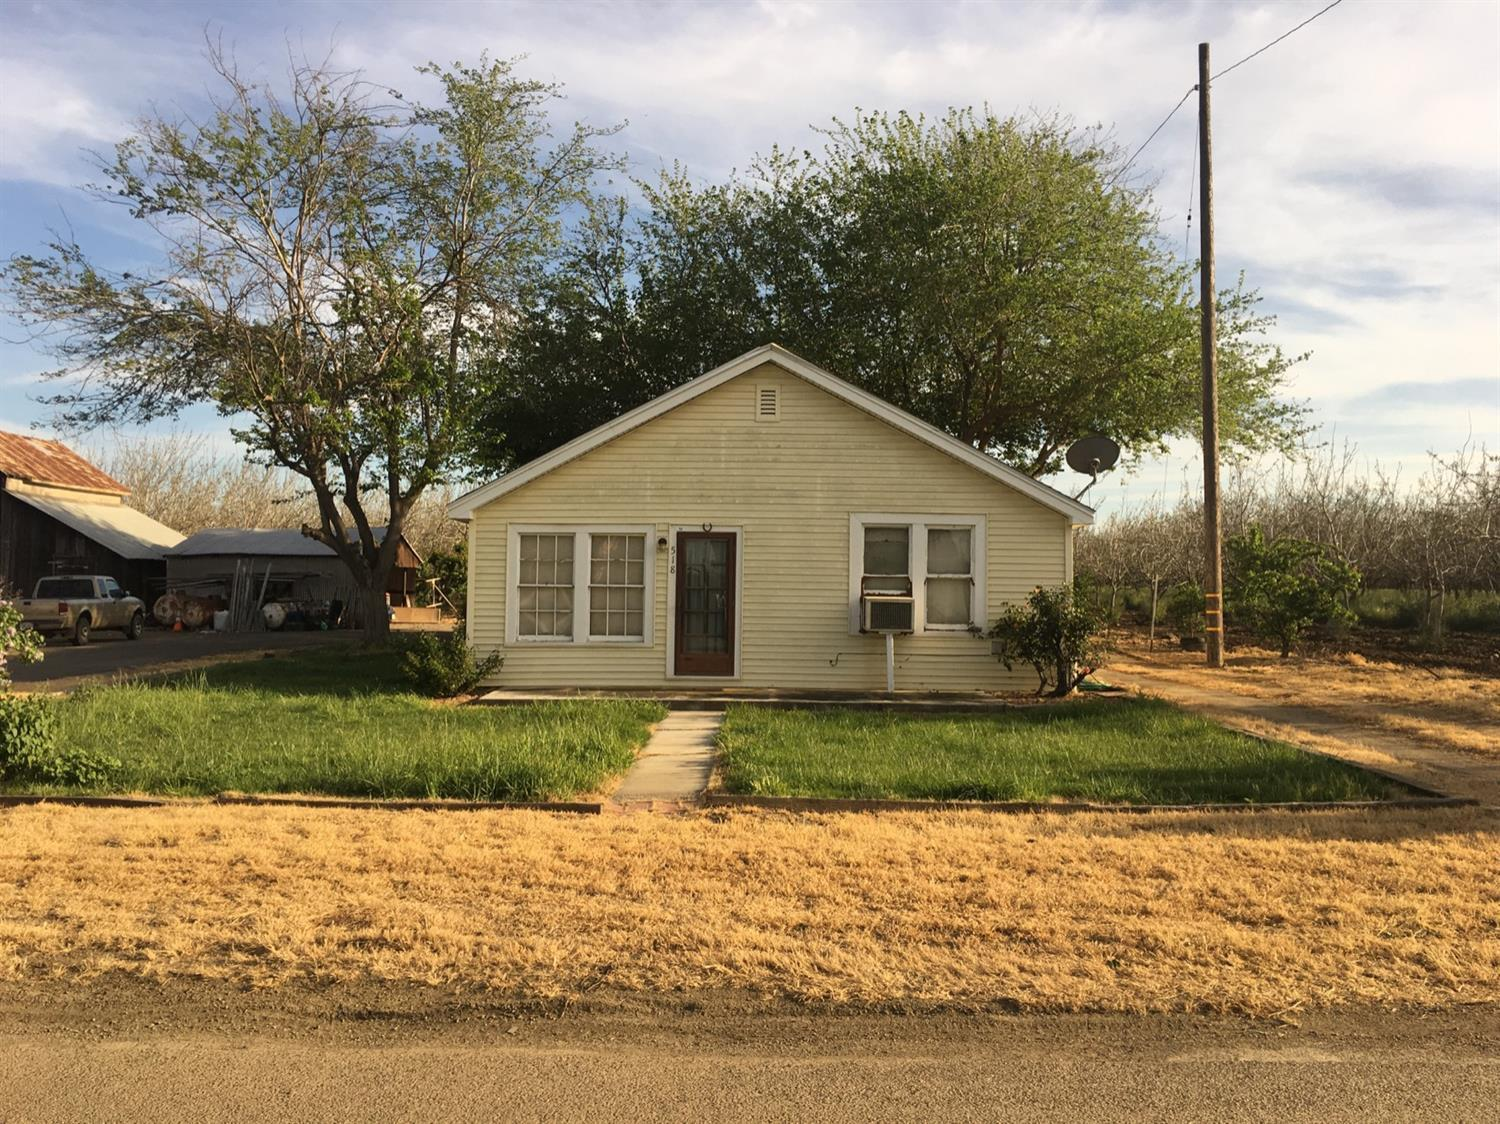 518 Bartch, Patterson, CA 95363